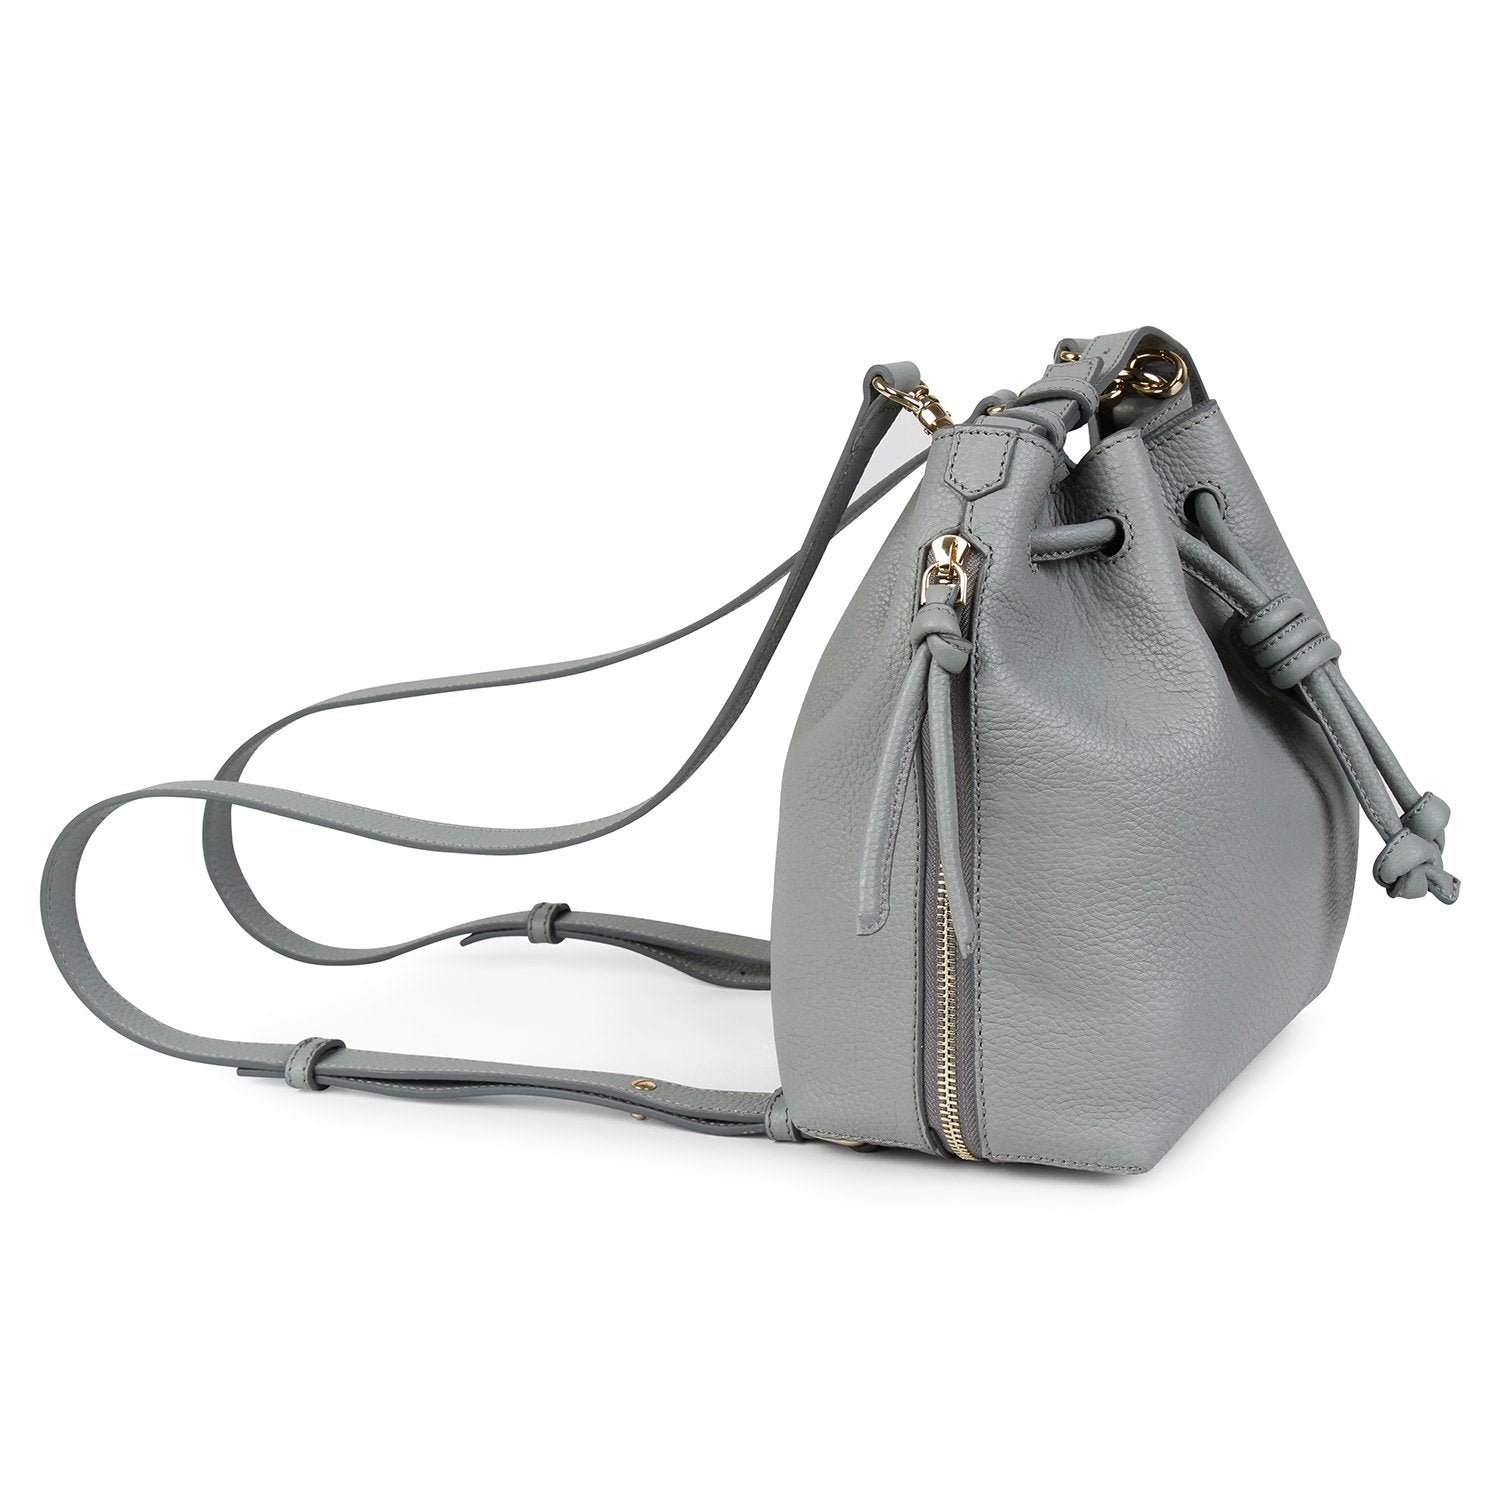 A convertible medium leather bucket crossbody bag in grey and blue that could be used as a backpack, side image.